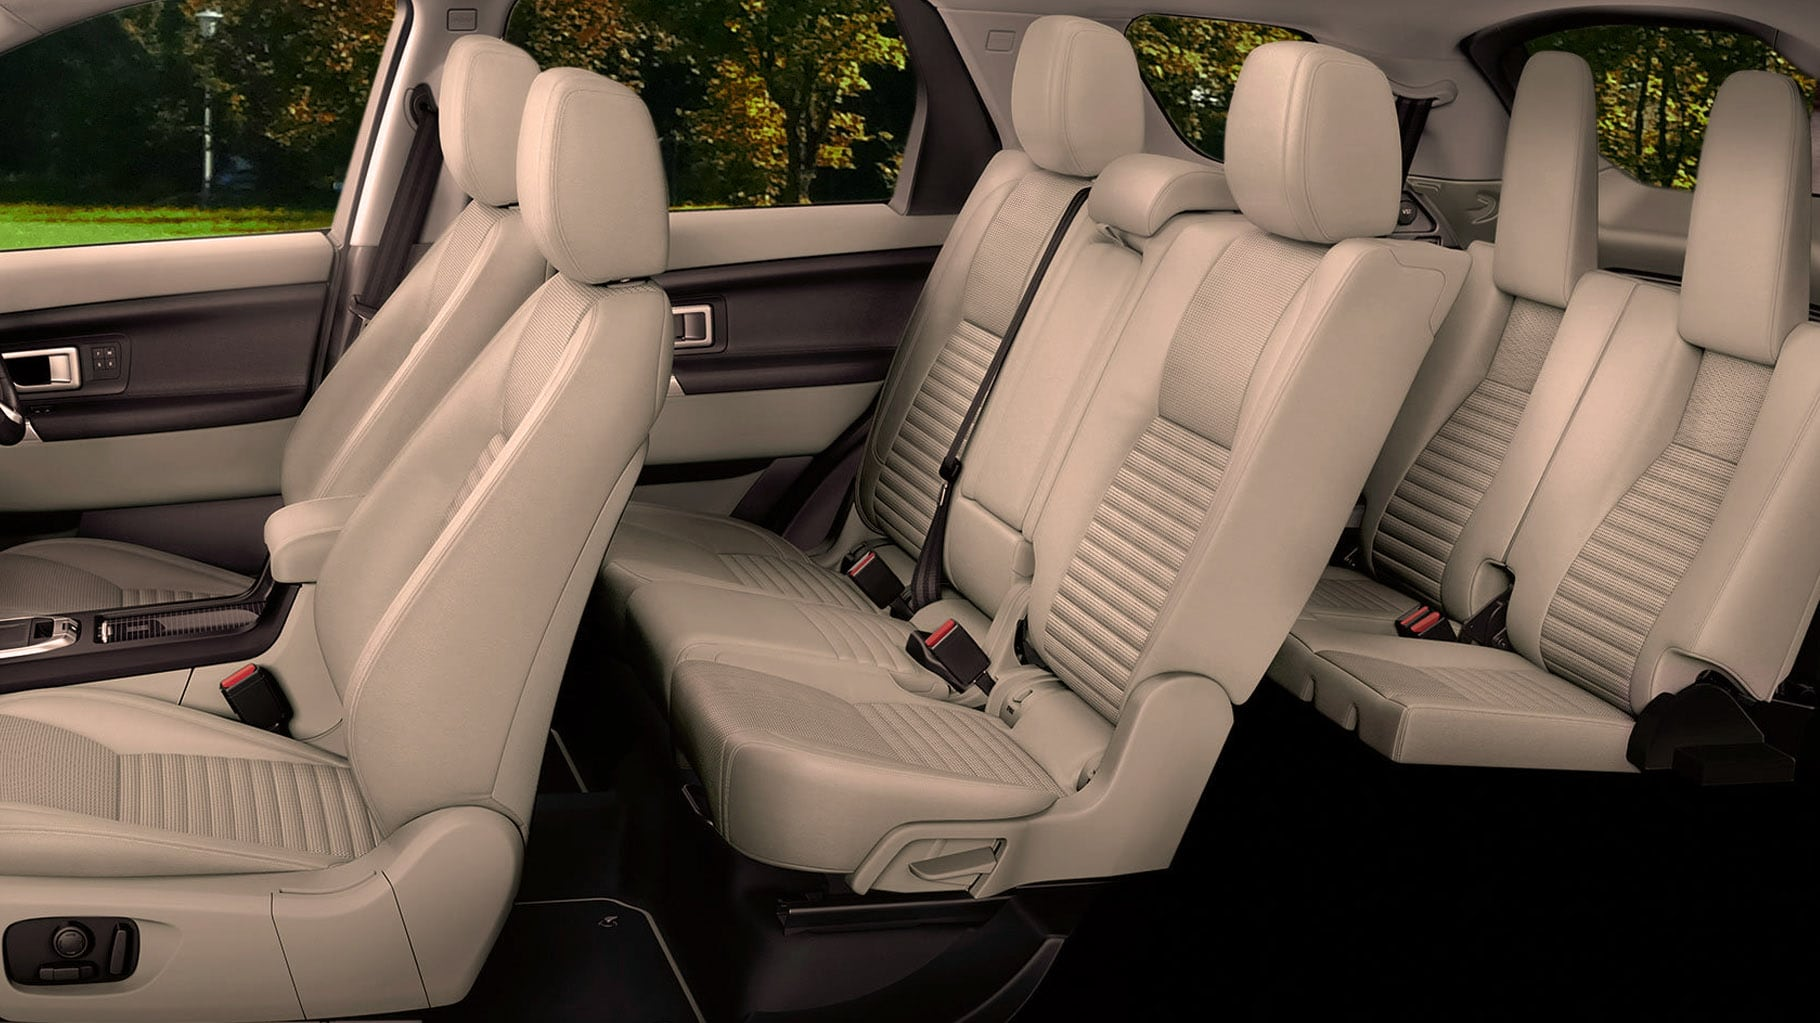 Land Rover Discovery 7 Seater Beige for prestige wedding car hire birmingham